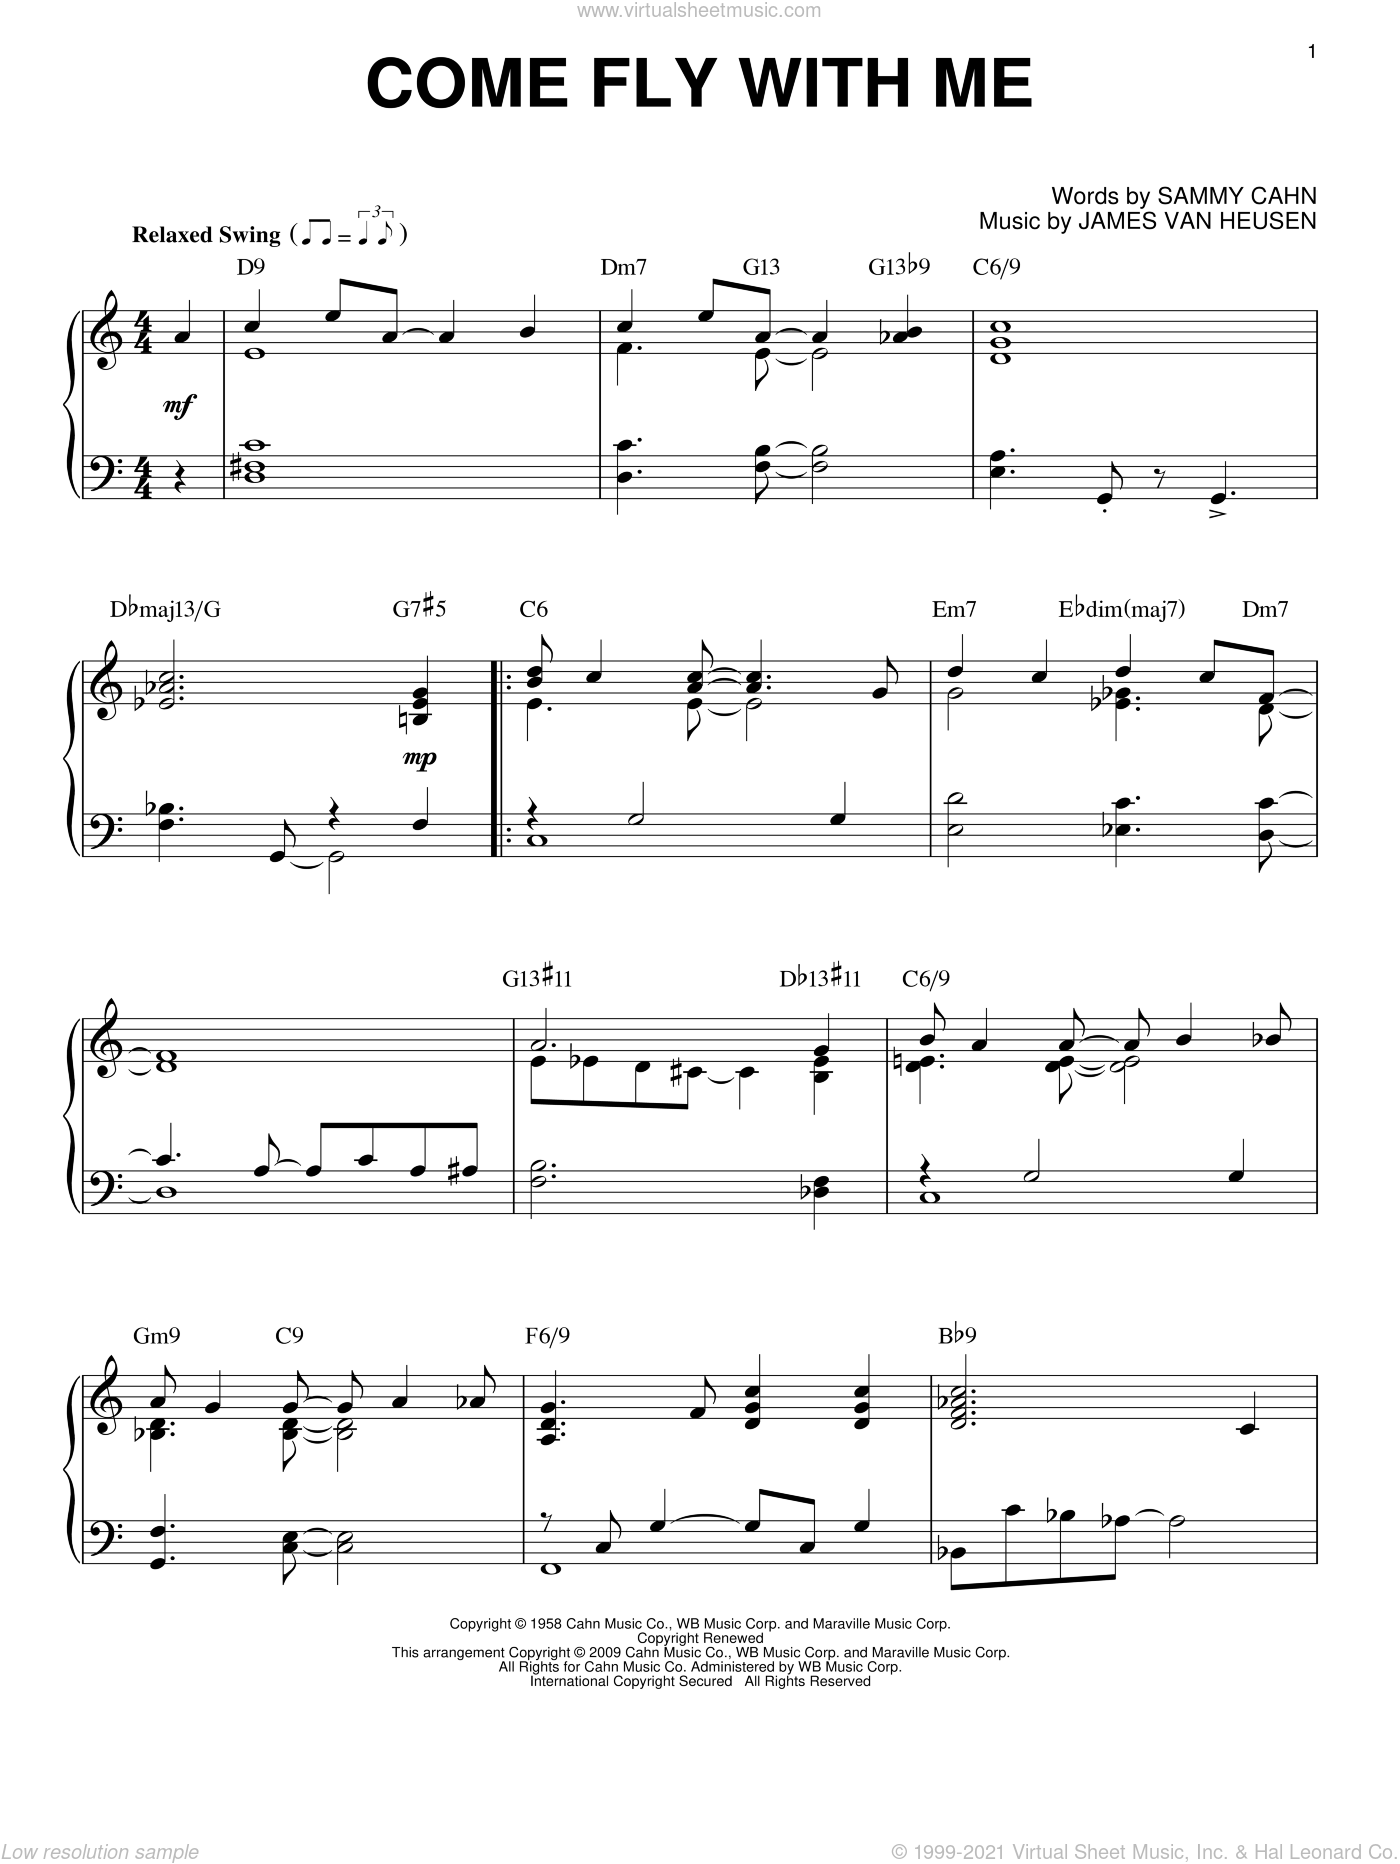 Come Fly With Me sheet music for piano solo by Sammy Cahn